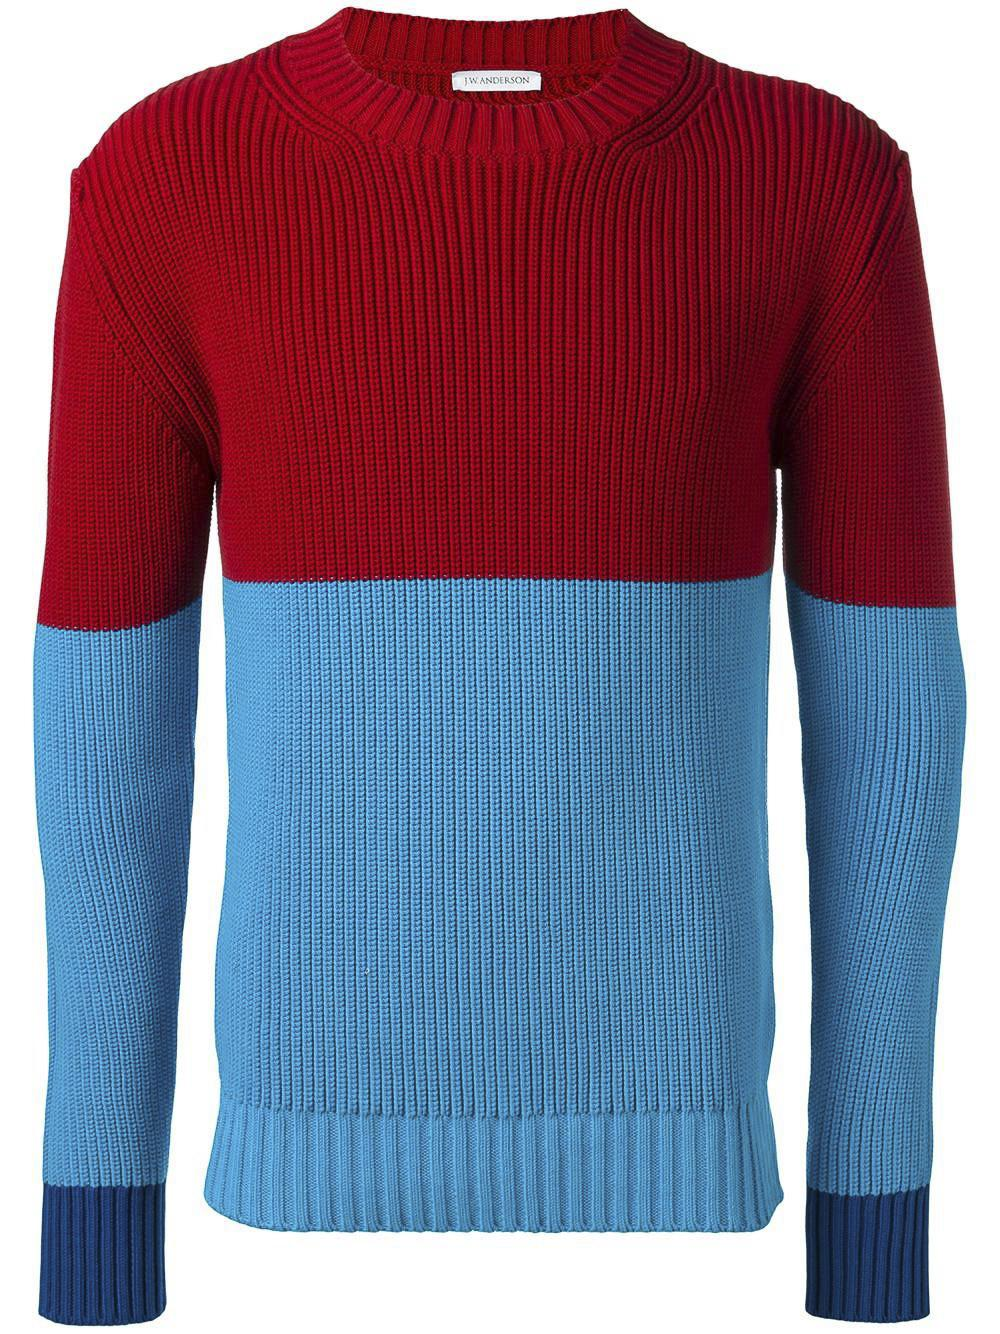 e10f28610 Lyst - J.W. Anderson Colour Block Jumper in Blue for Men